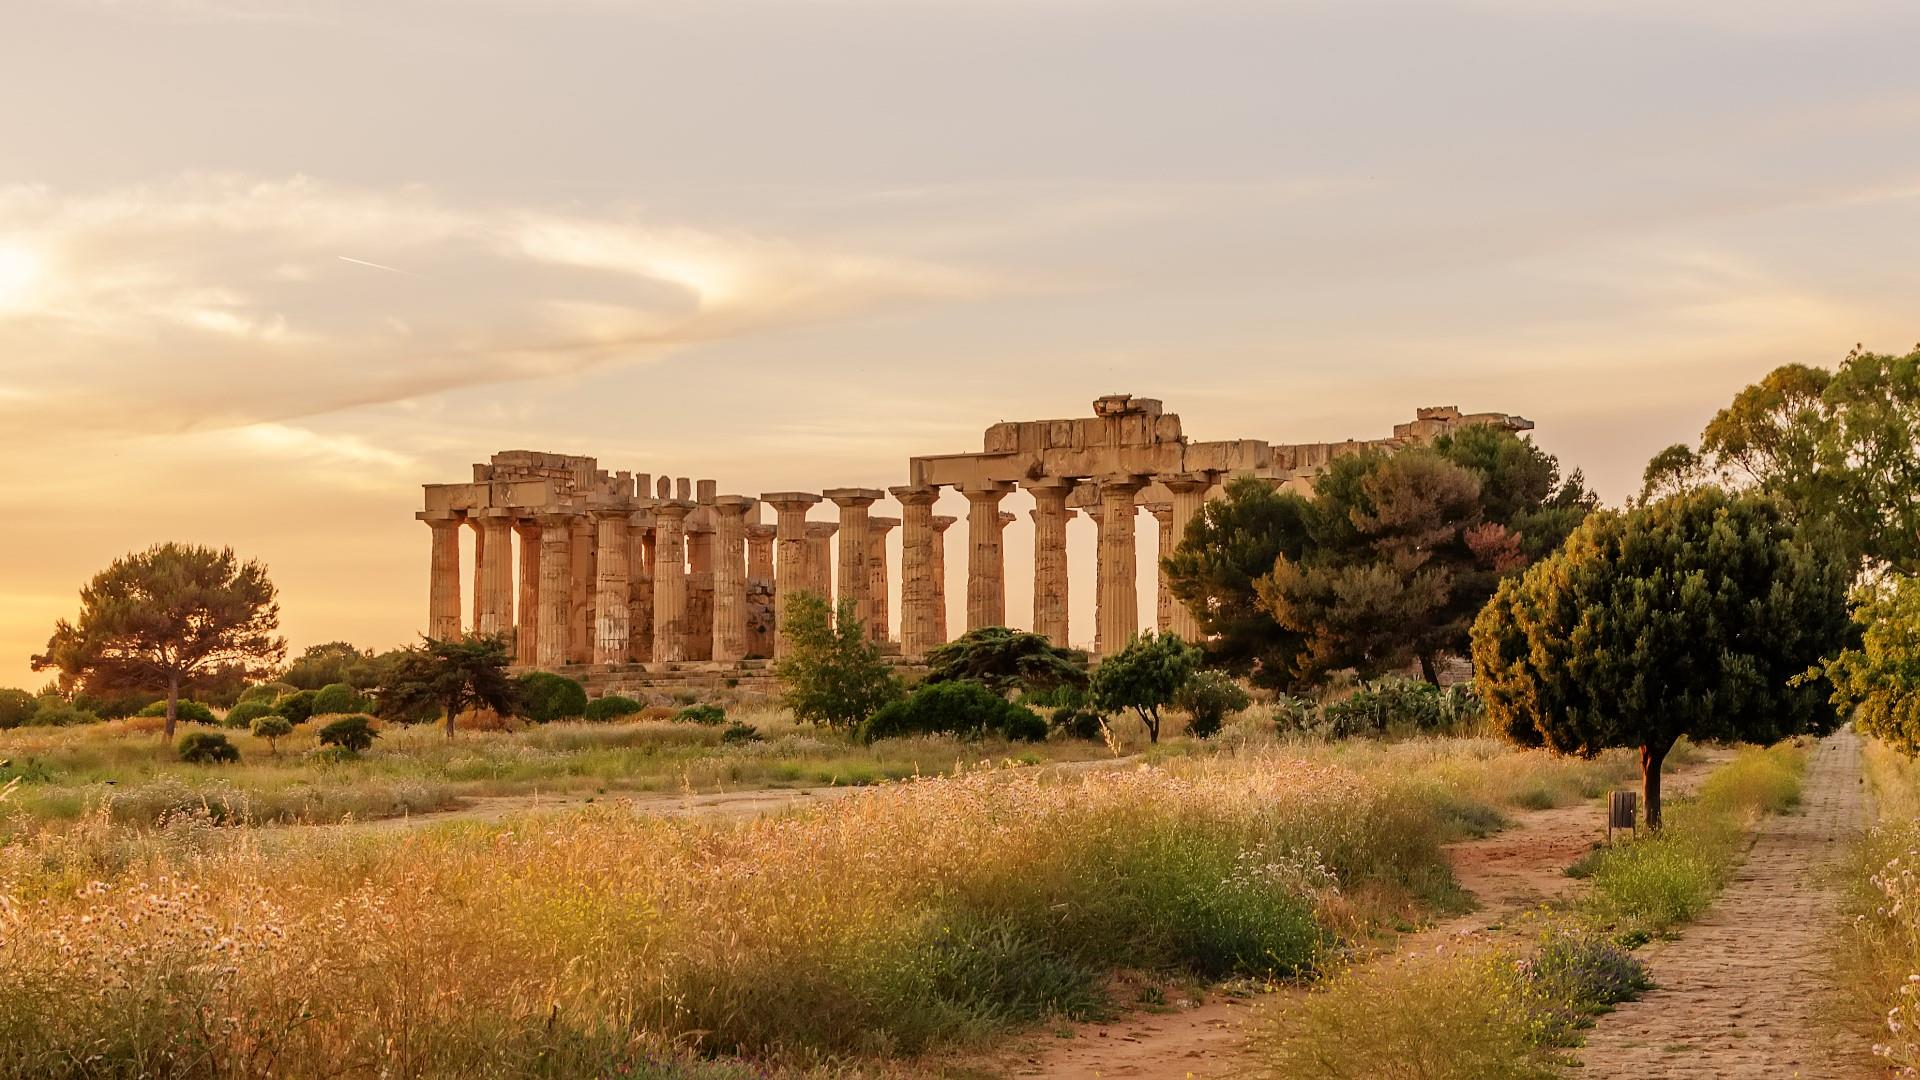 Temple Of Hera - Selinunte, Sicily, Italy wallpaper